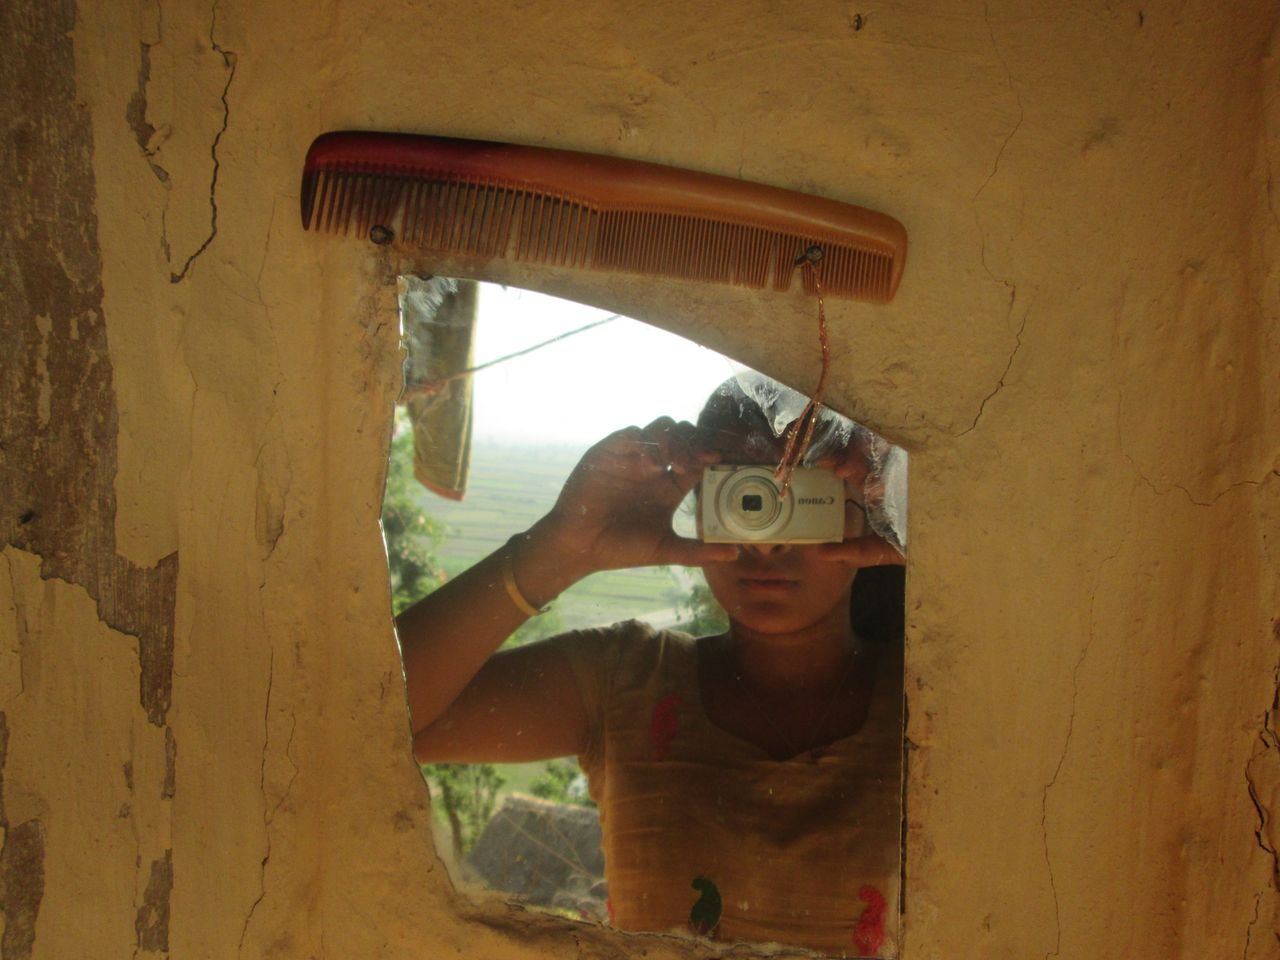 In some regions, when girls get their first period, they're not allowed to look into mirrors or comb their hair.